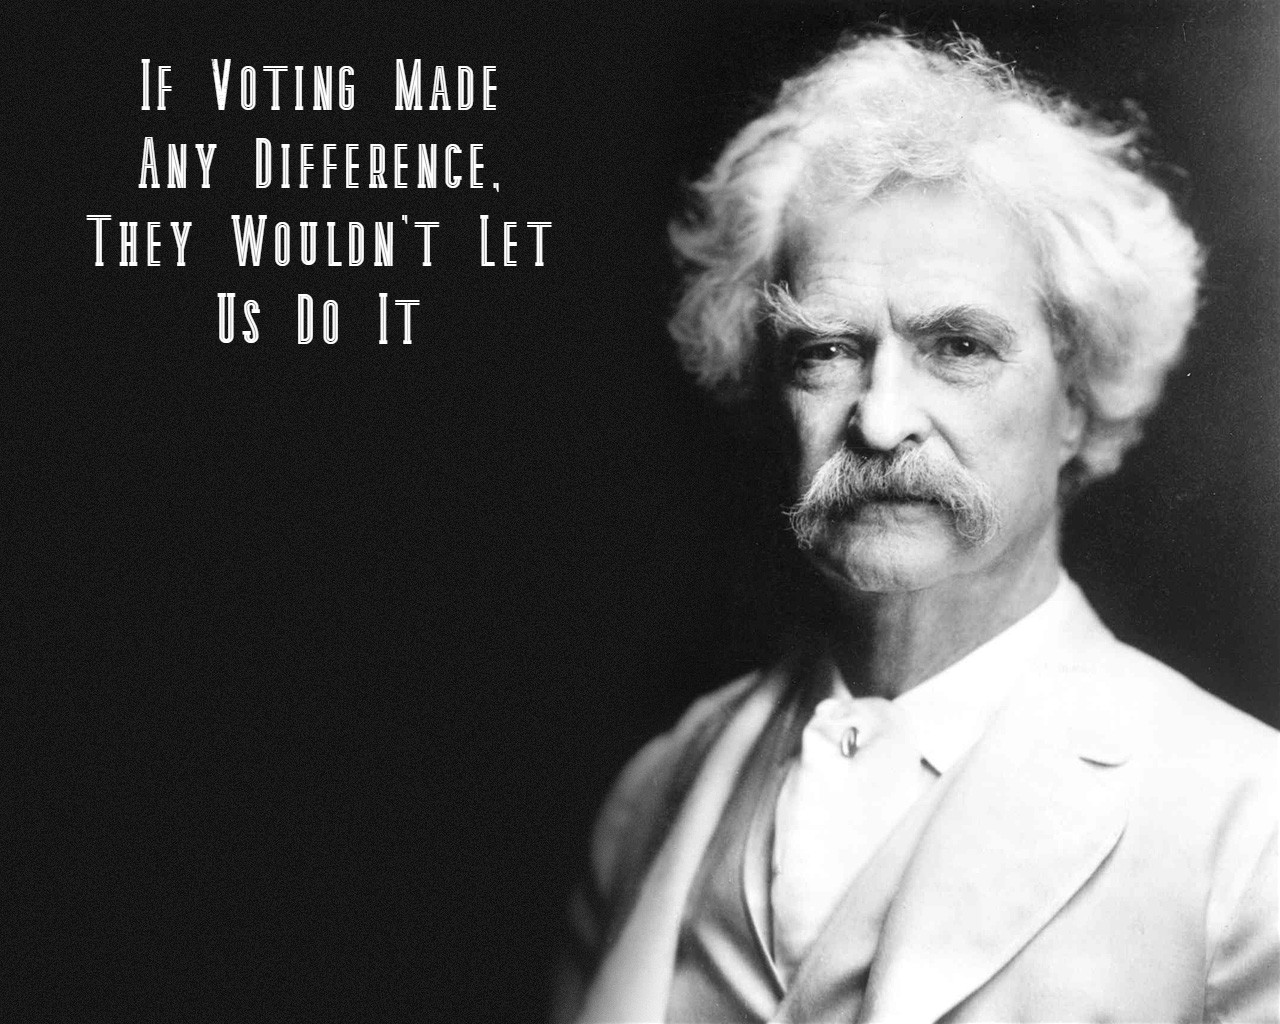 """If voting made any difference, they wouldn't let us do it"" – Mark Twain [1280 x 1024]"